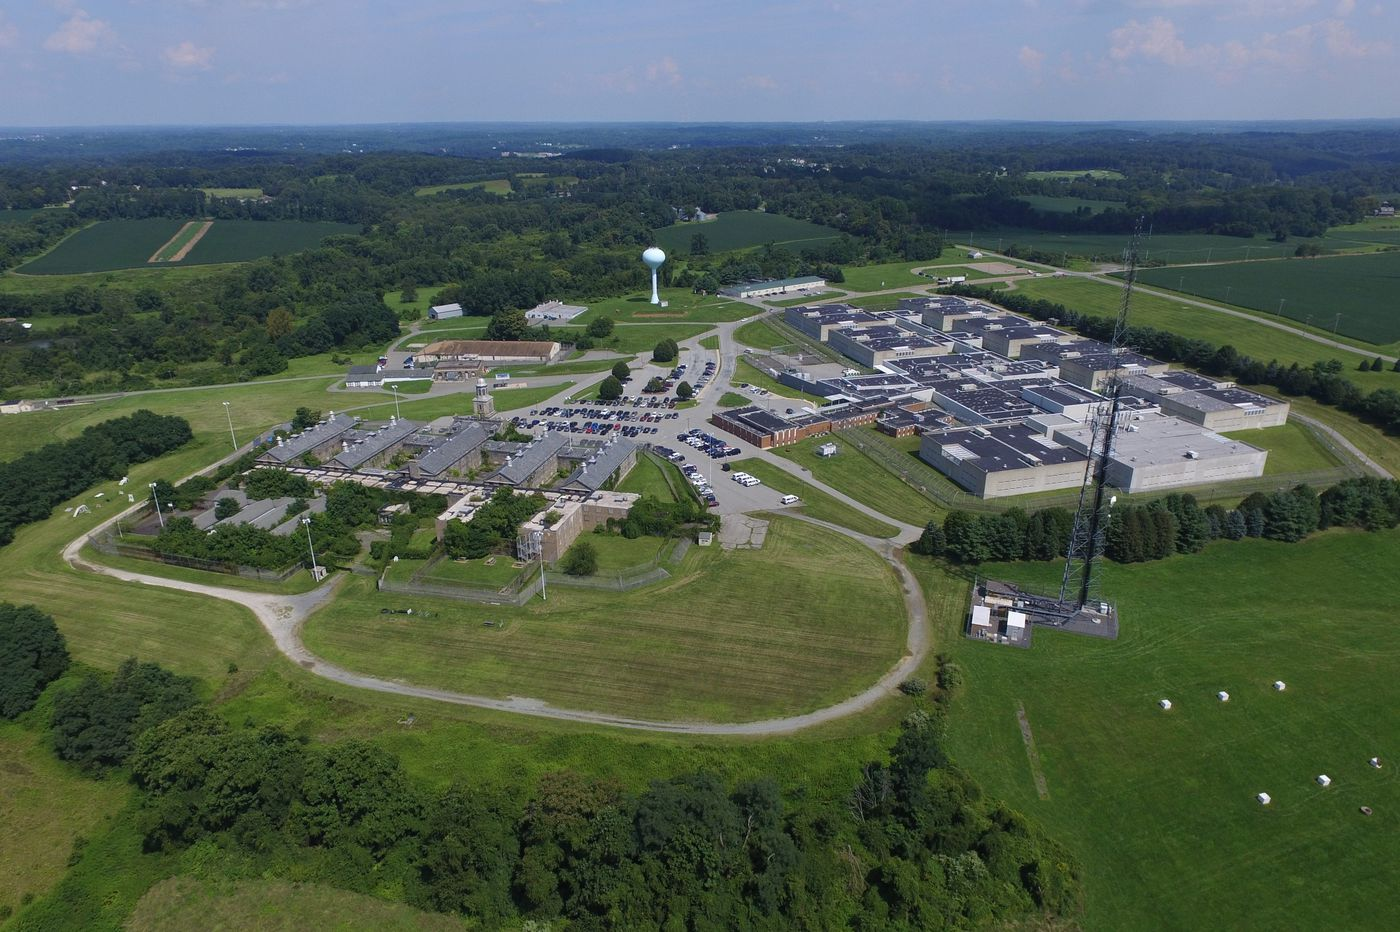 24-hour toilet outage sparks tension at Delaware County prison